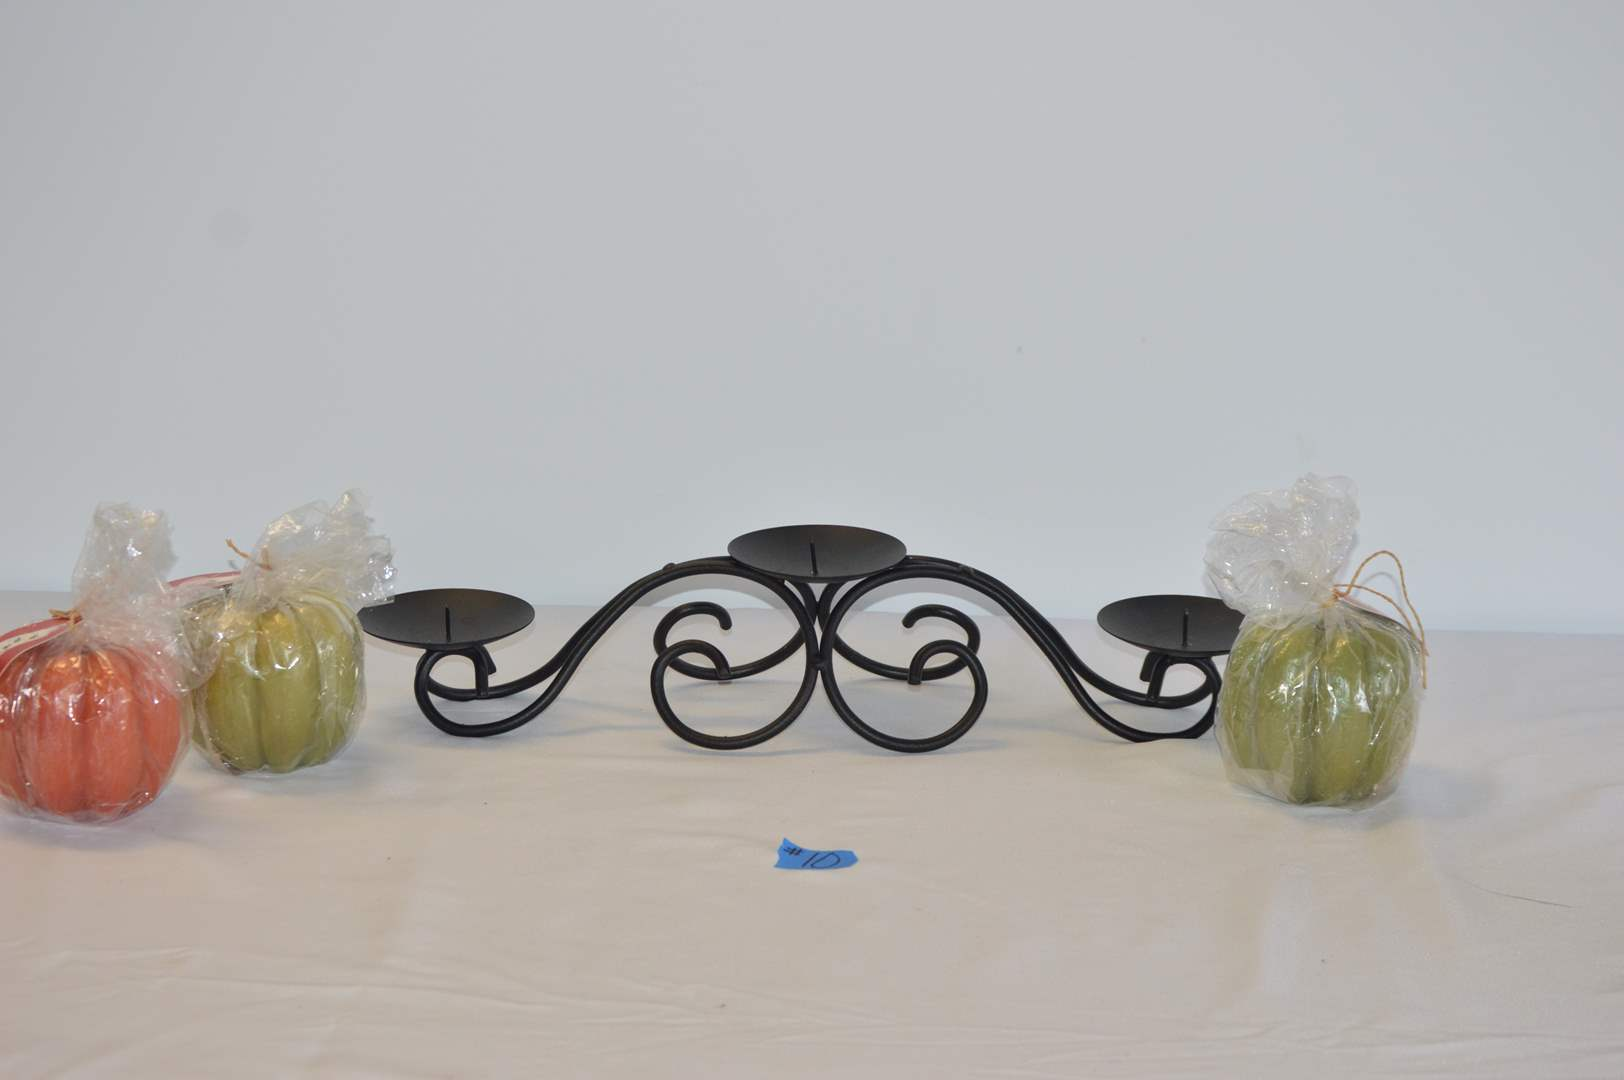 Lot # 10 Rod iron candle centerpiece w/ 3 new candles (main image)